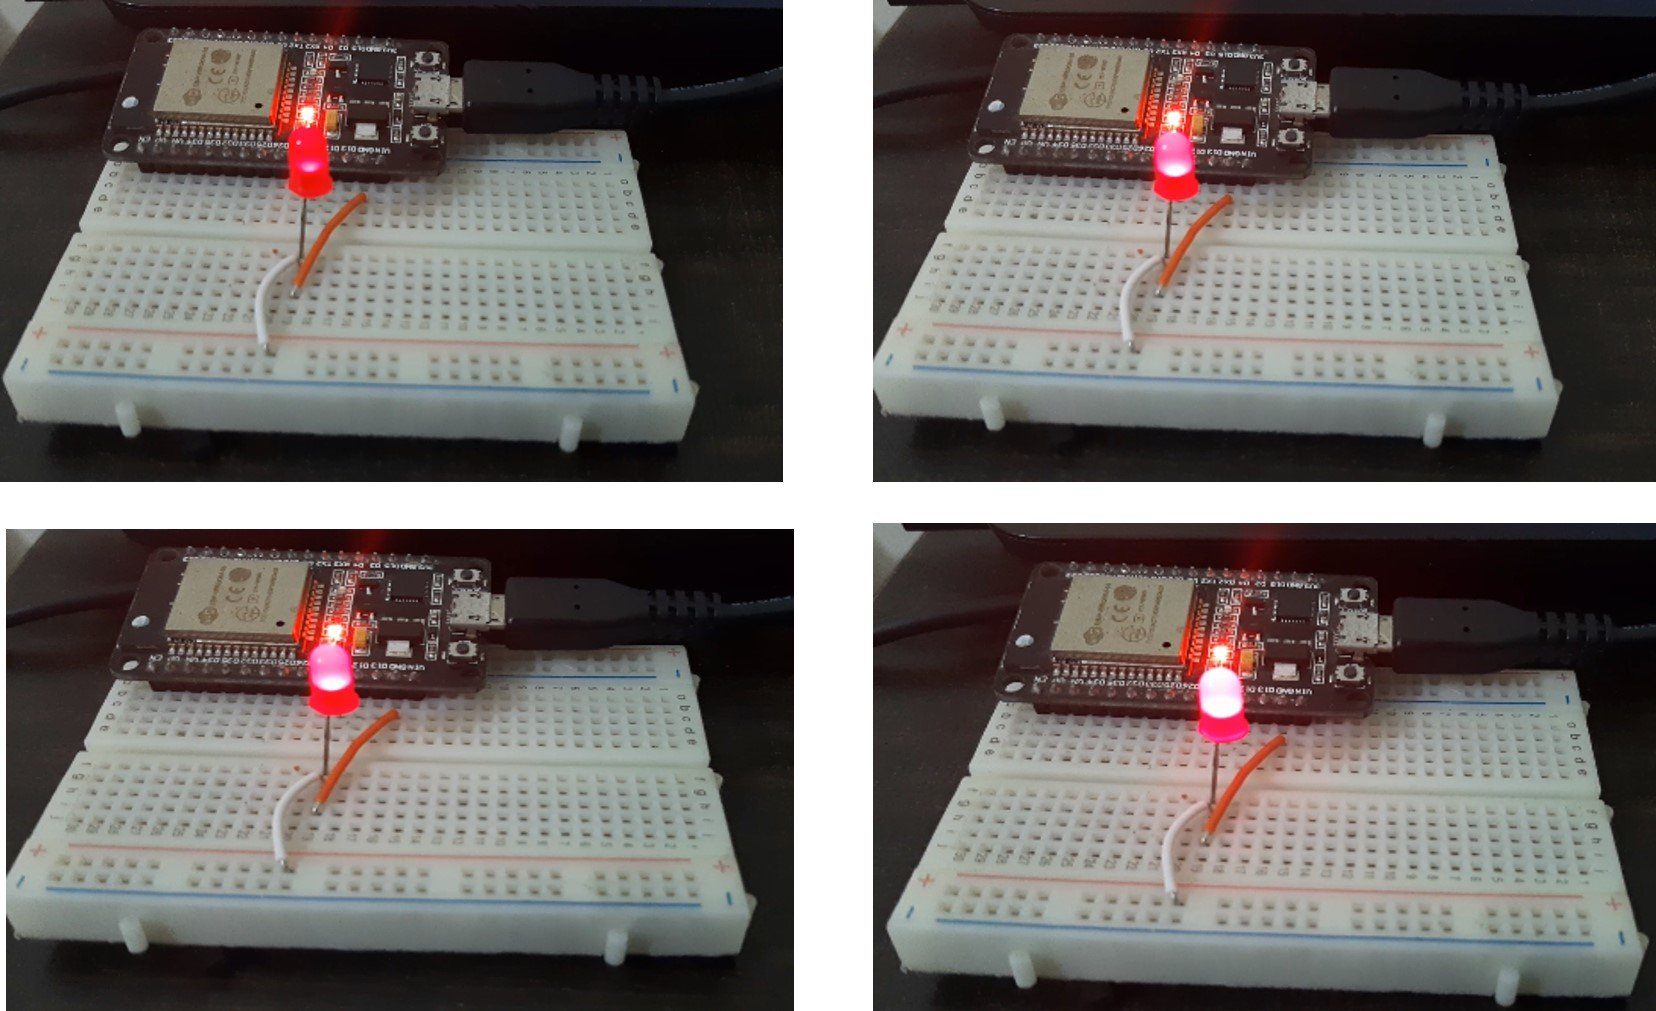 ESP32 ESP8266 LED fading example with PWM and MicroPython